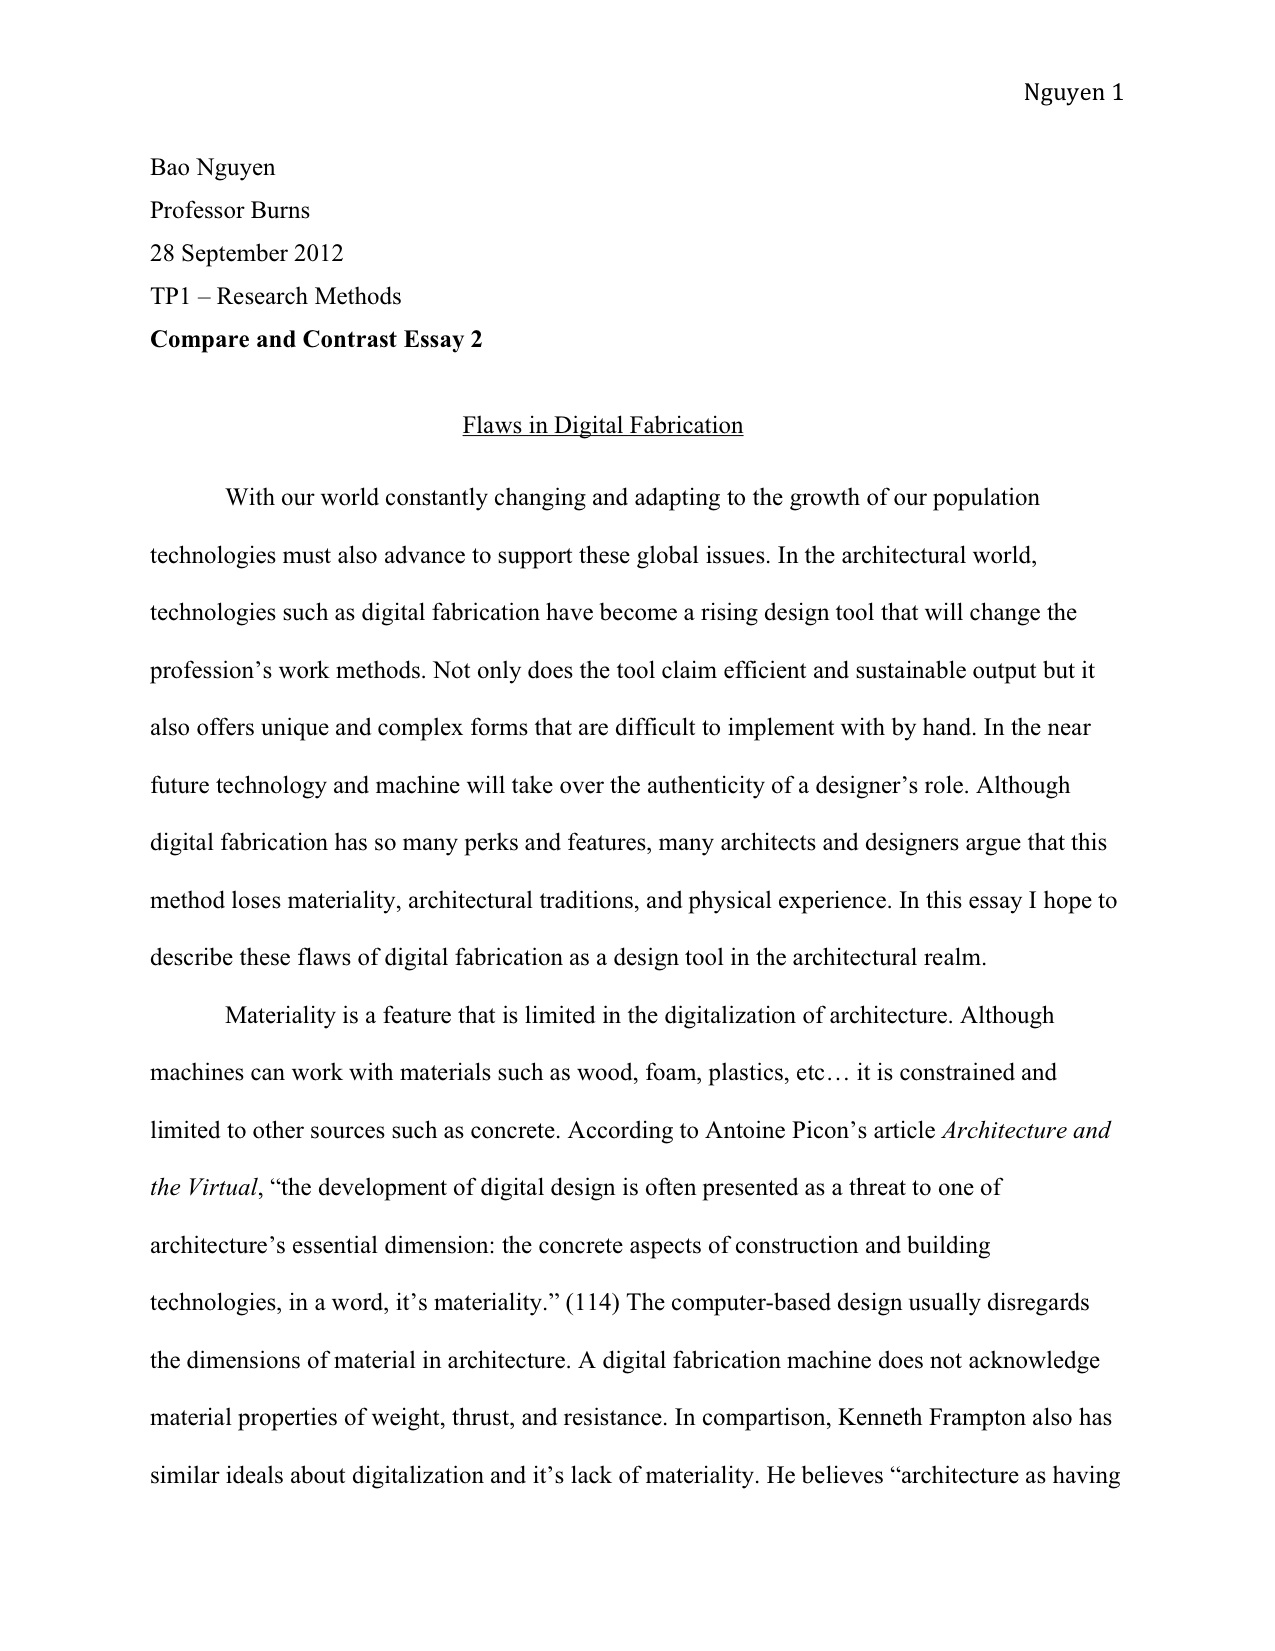 writte essay Follow our advices and recommendations if you strive to know how to write a vibrant, catchy and unforgettable essay not depending on its topic and complexity.